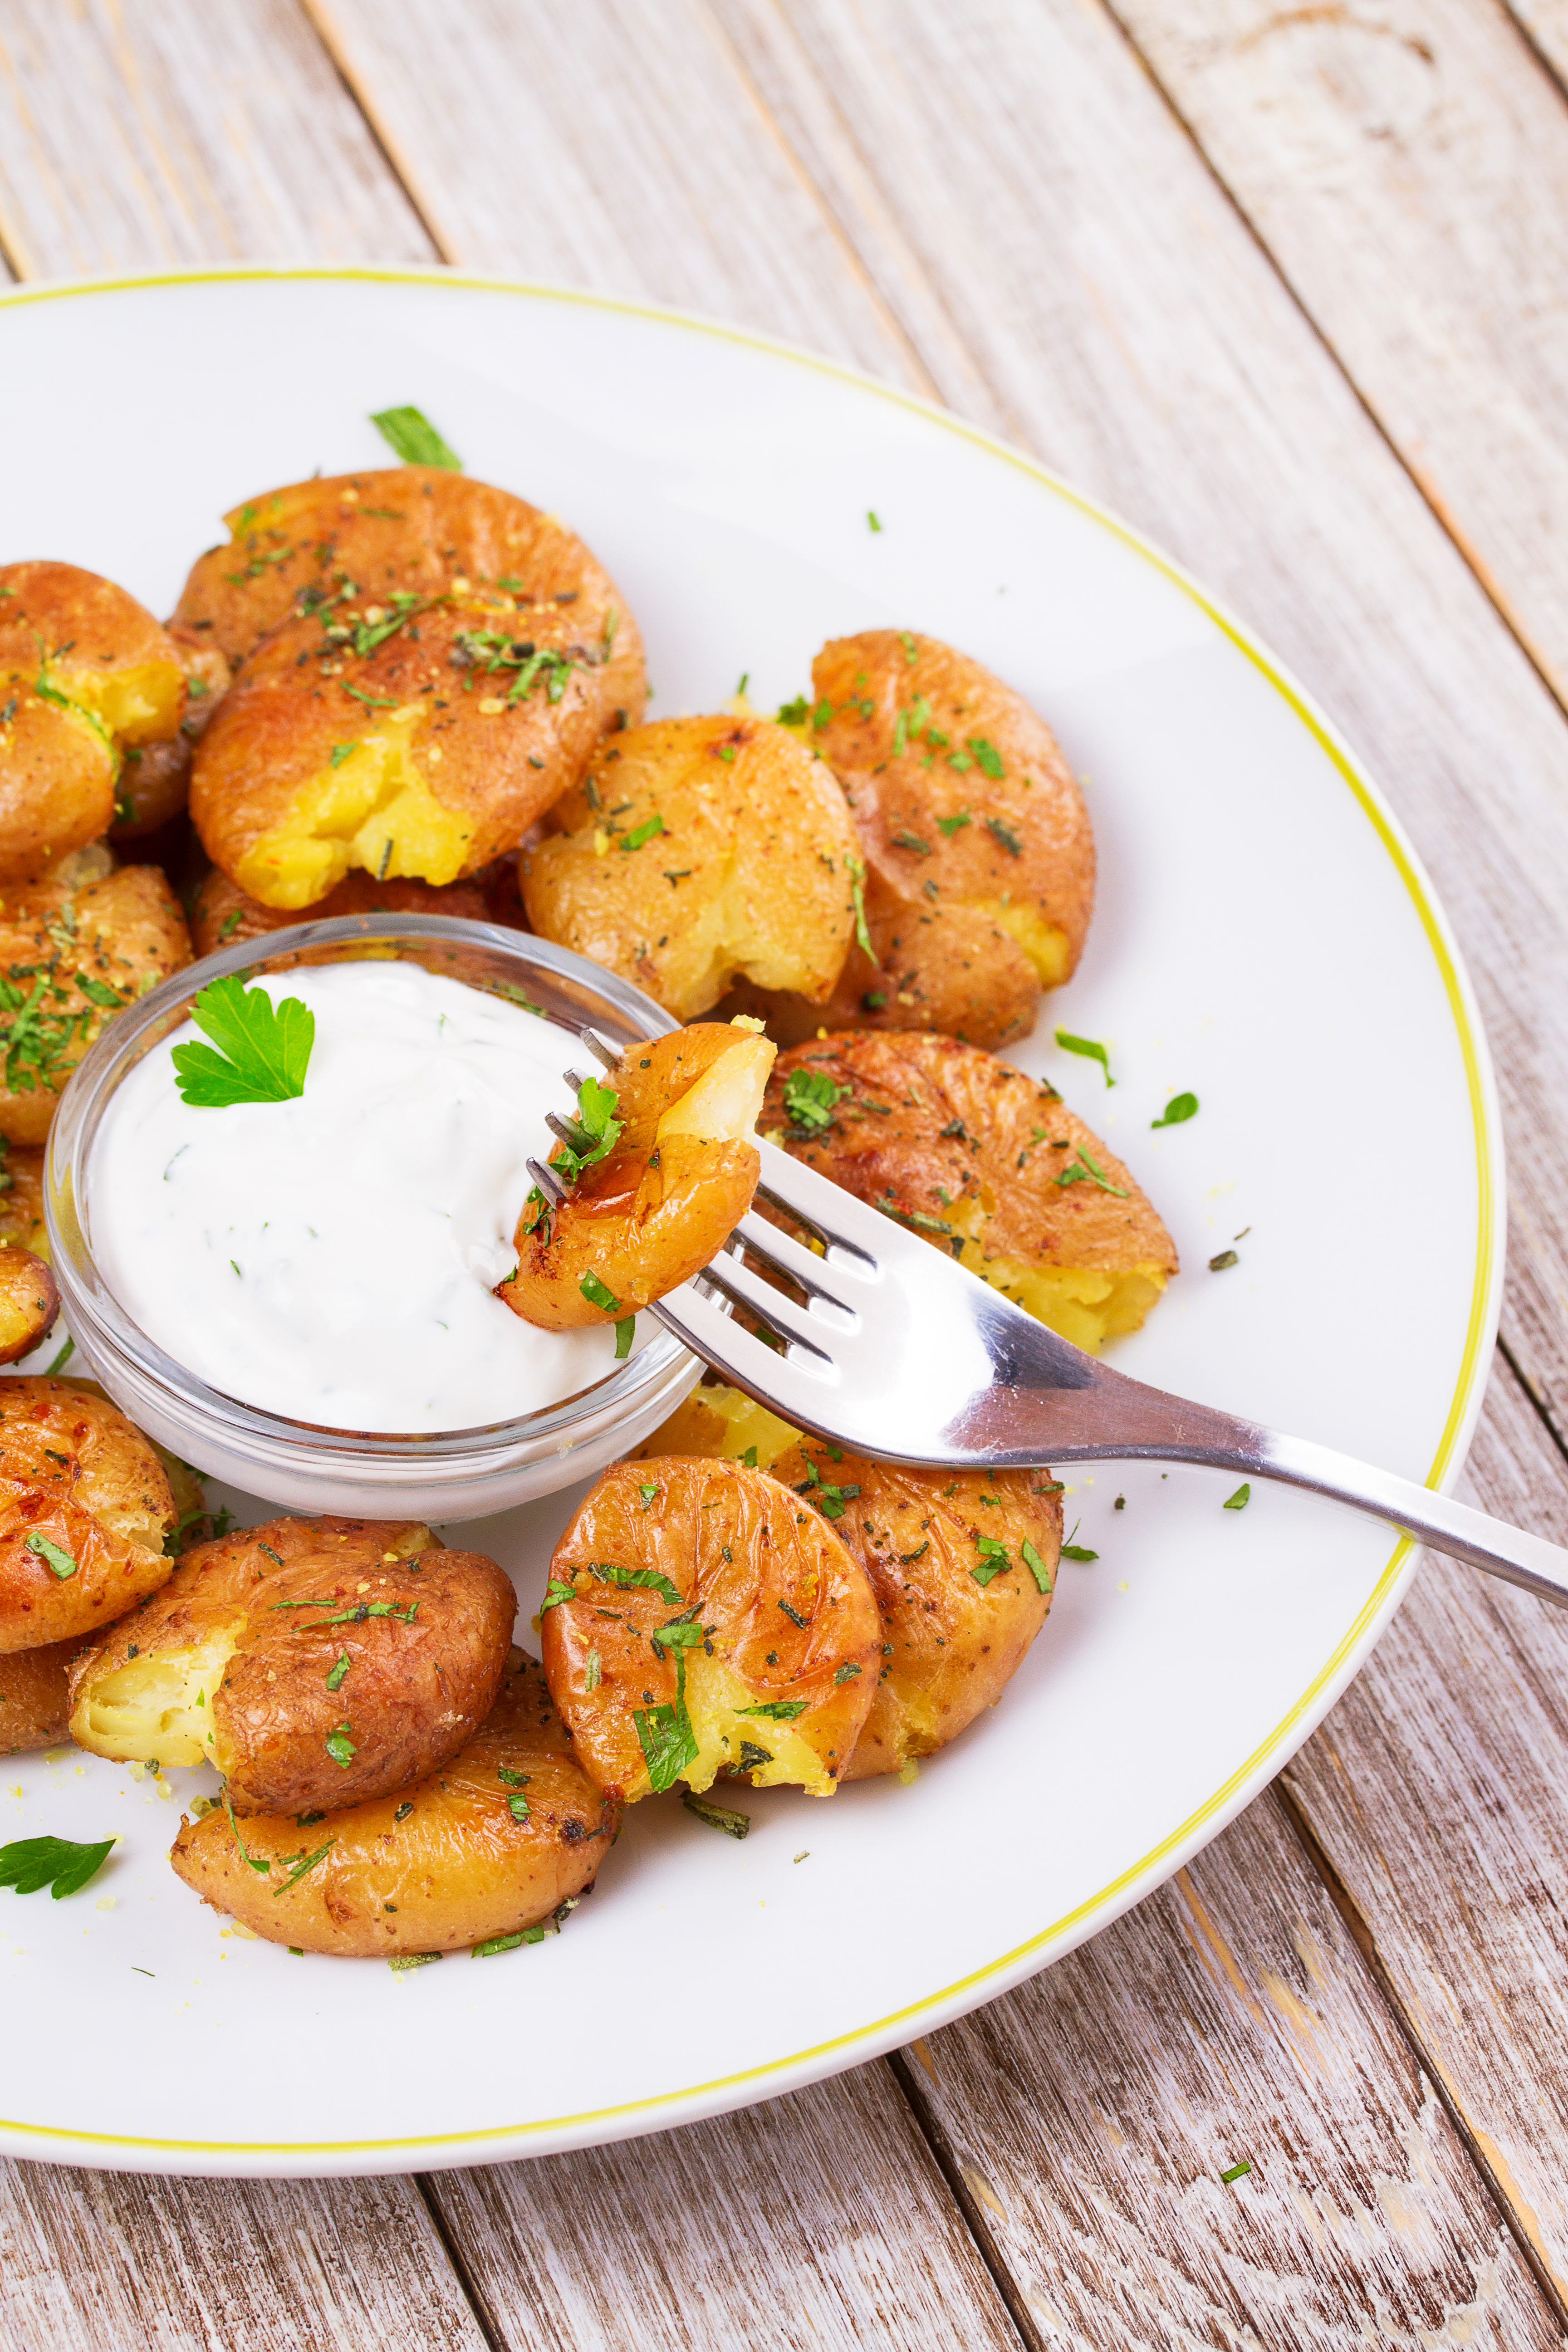 Smashed Potatoes with parsley, dried rosemary, lemon zest and yogurt sauce